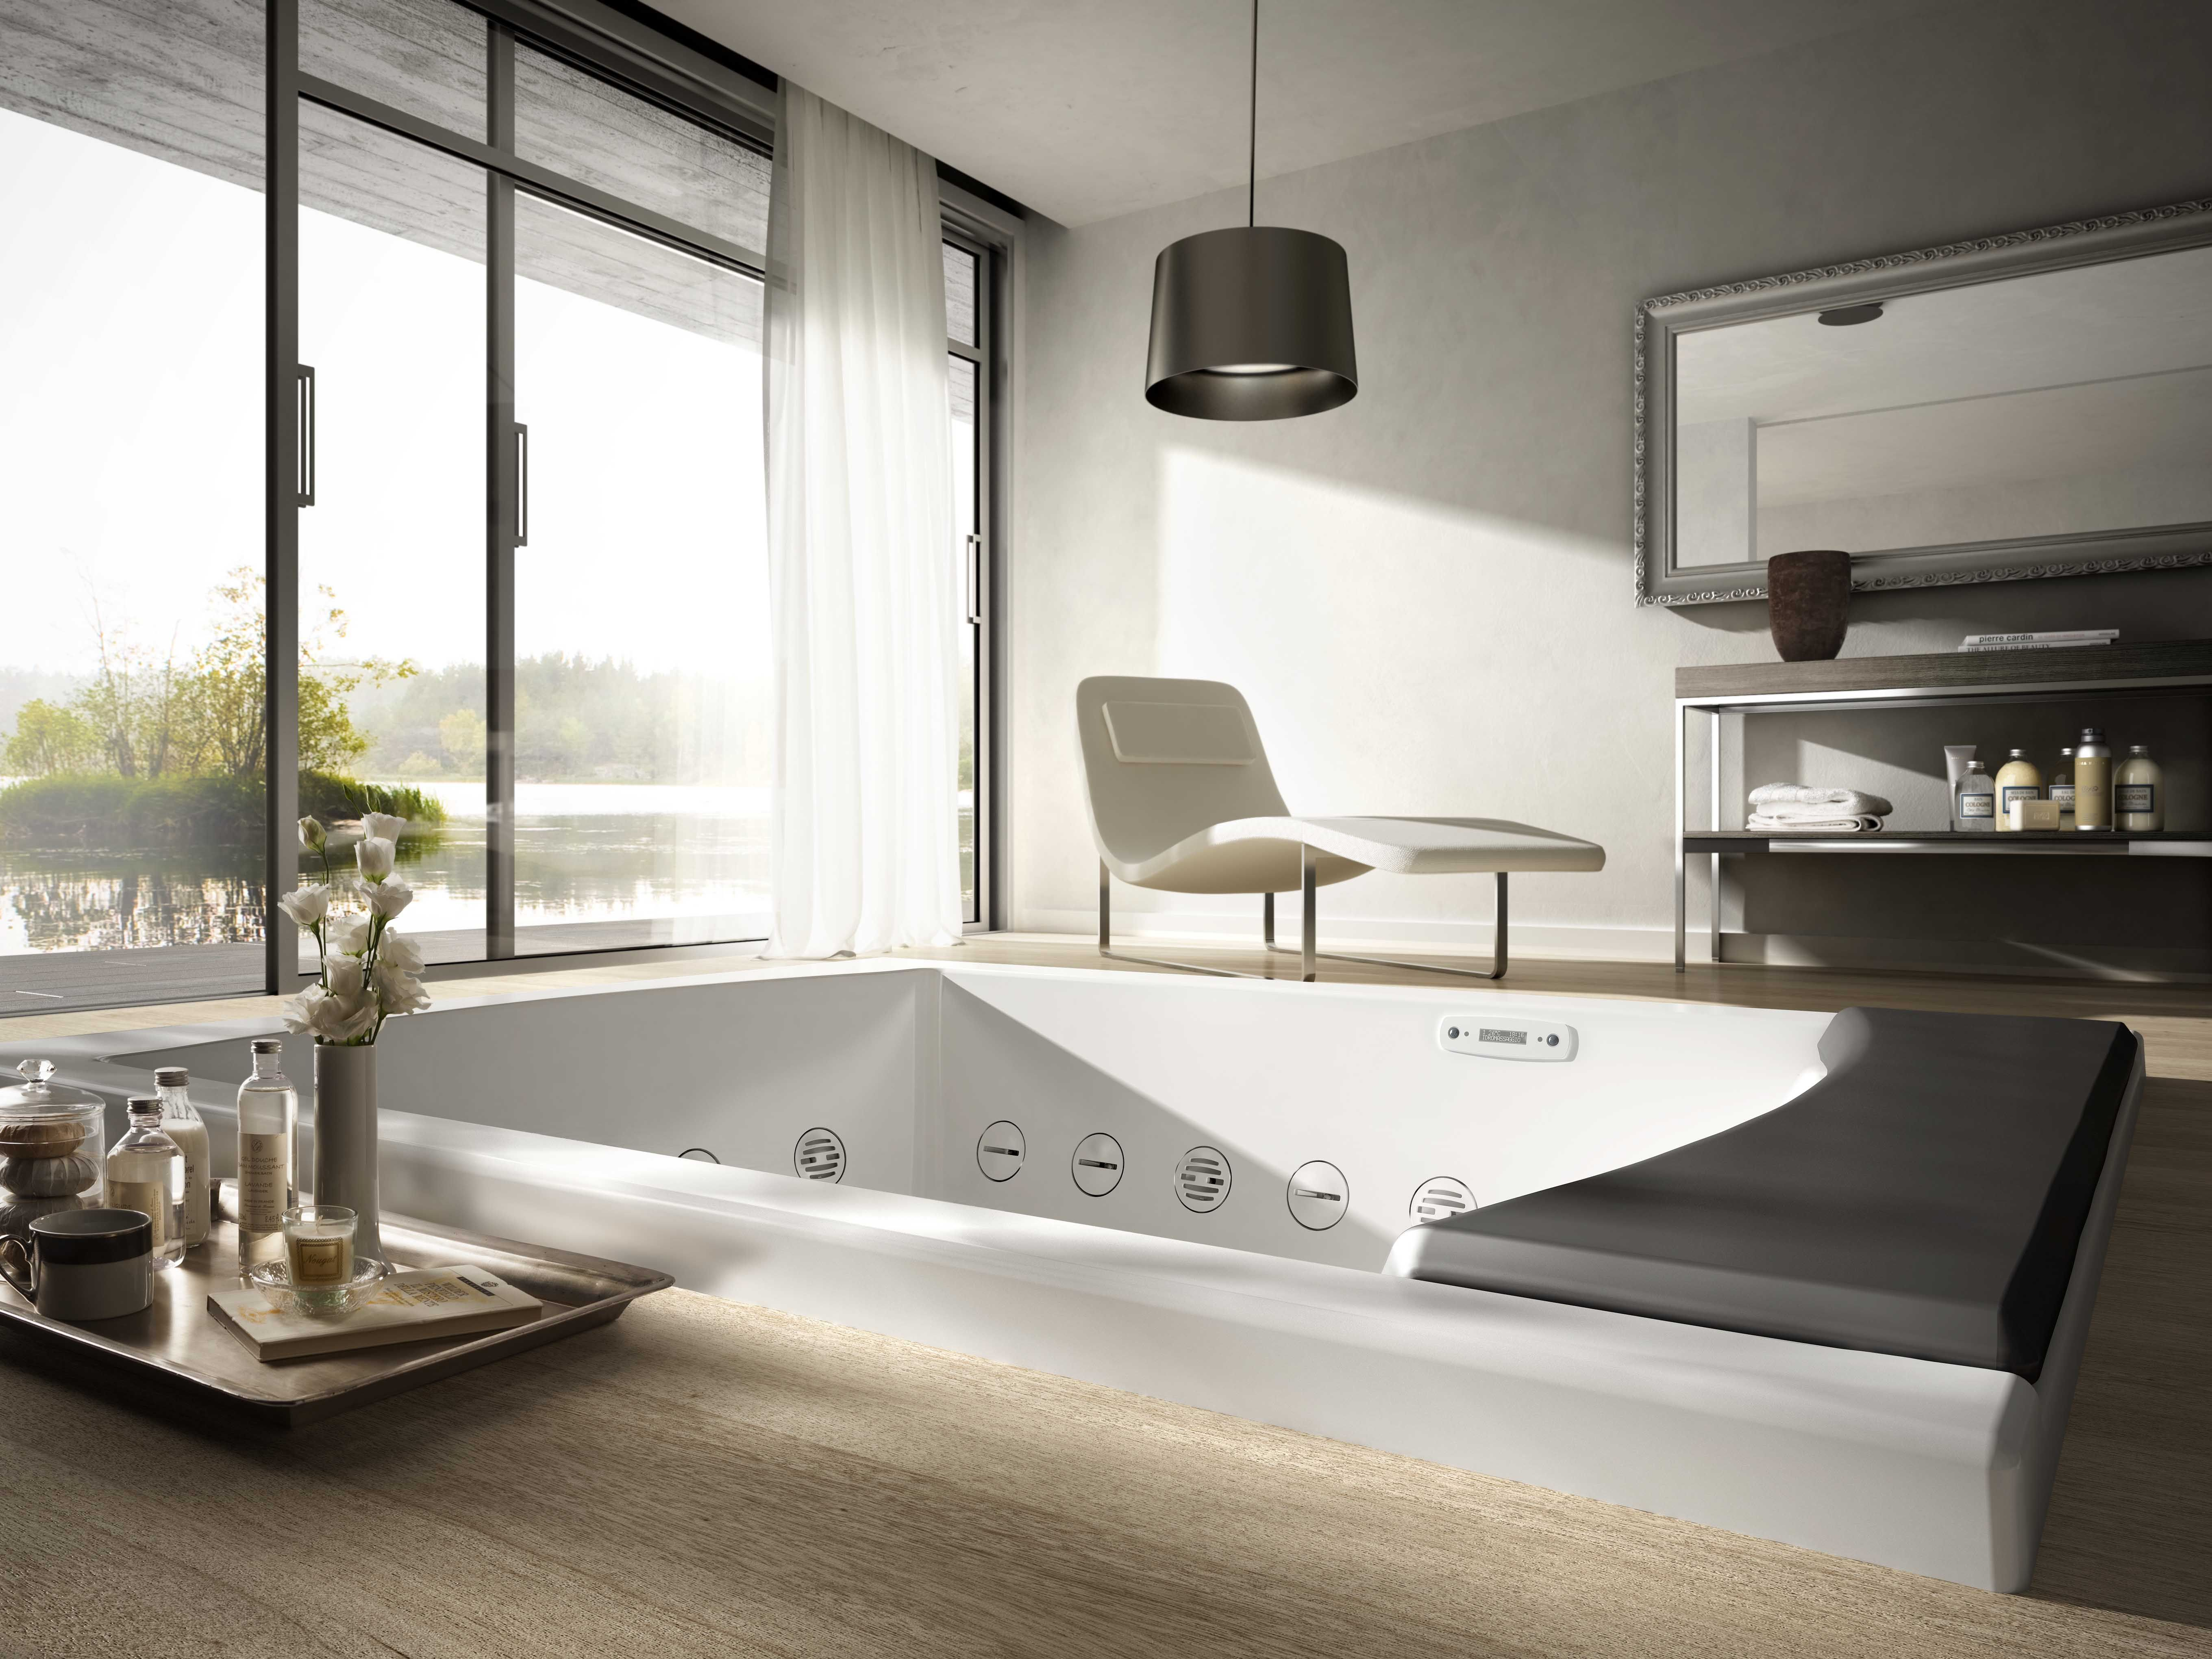 Seaside for the #bathroom, #bathtub for two people concealing a host ...